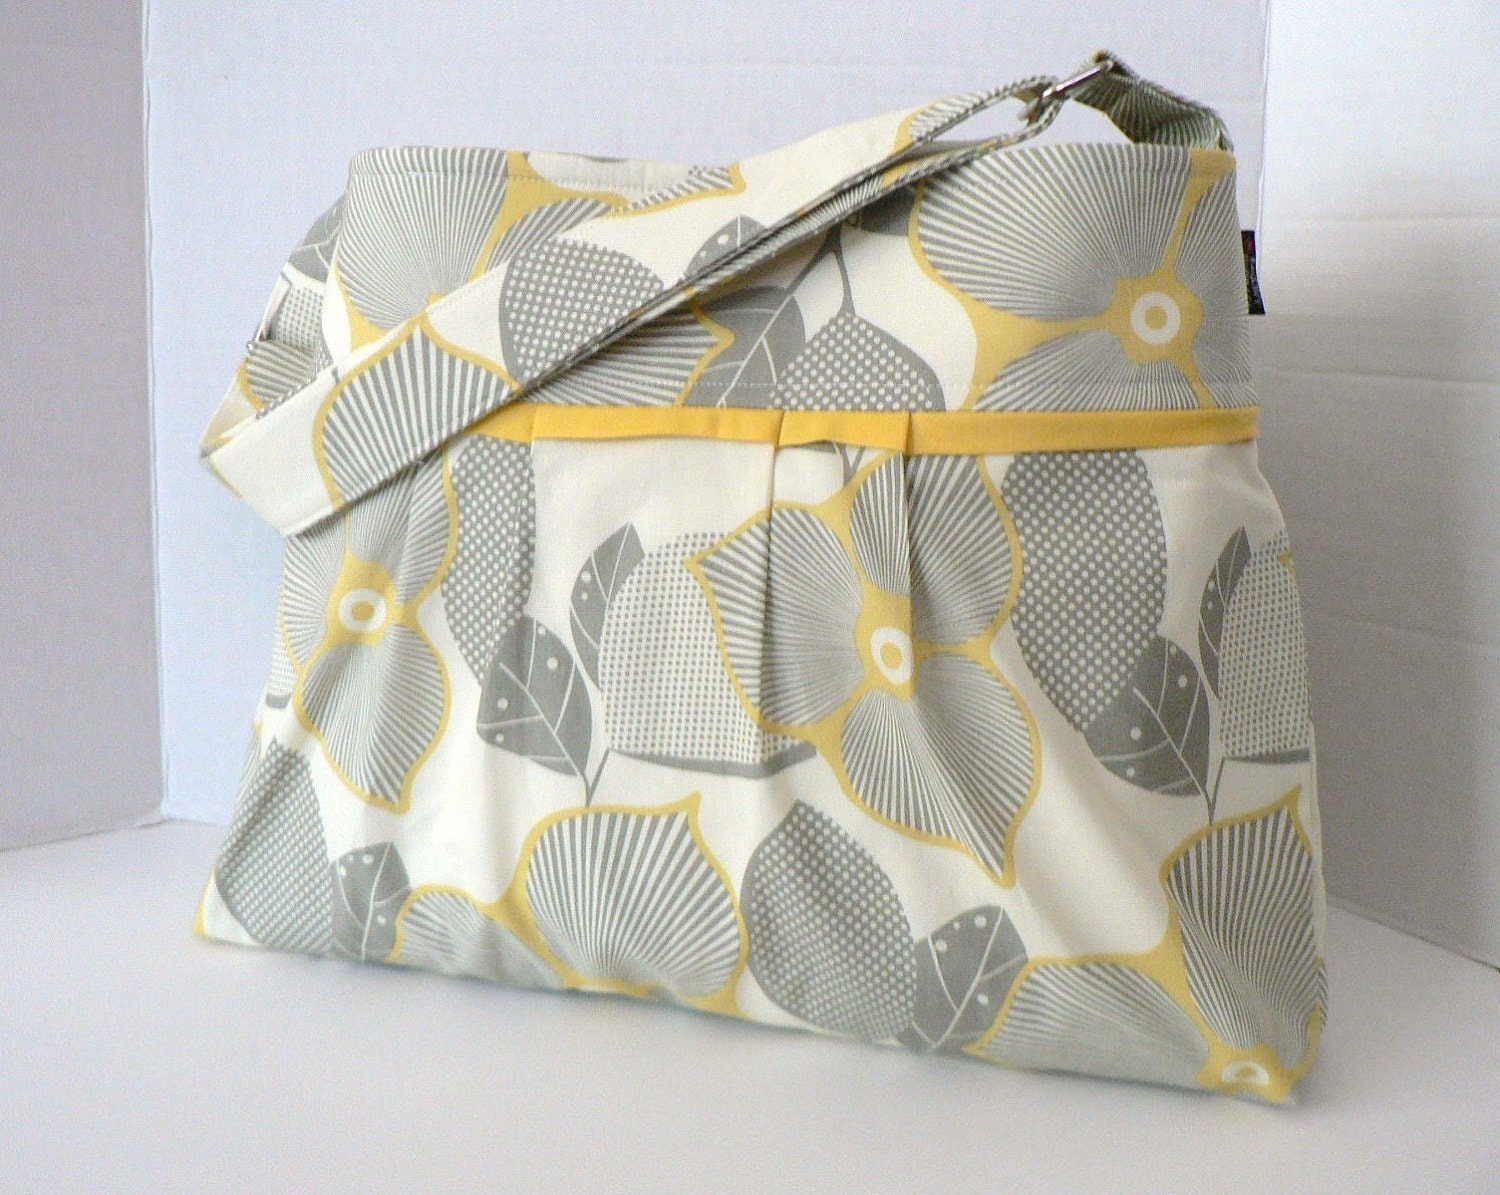 The Monterey Diaper Bag Medium - In Optic Blossom and Martini with Adjustable Strap and Elastic Pockets